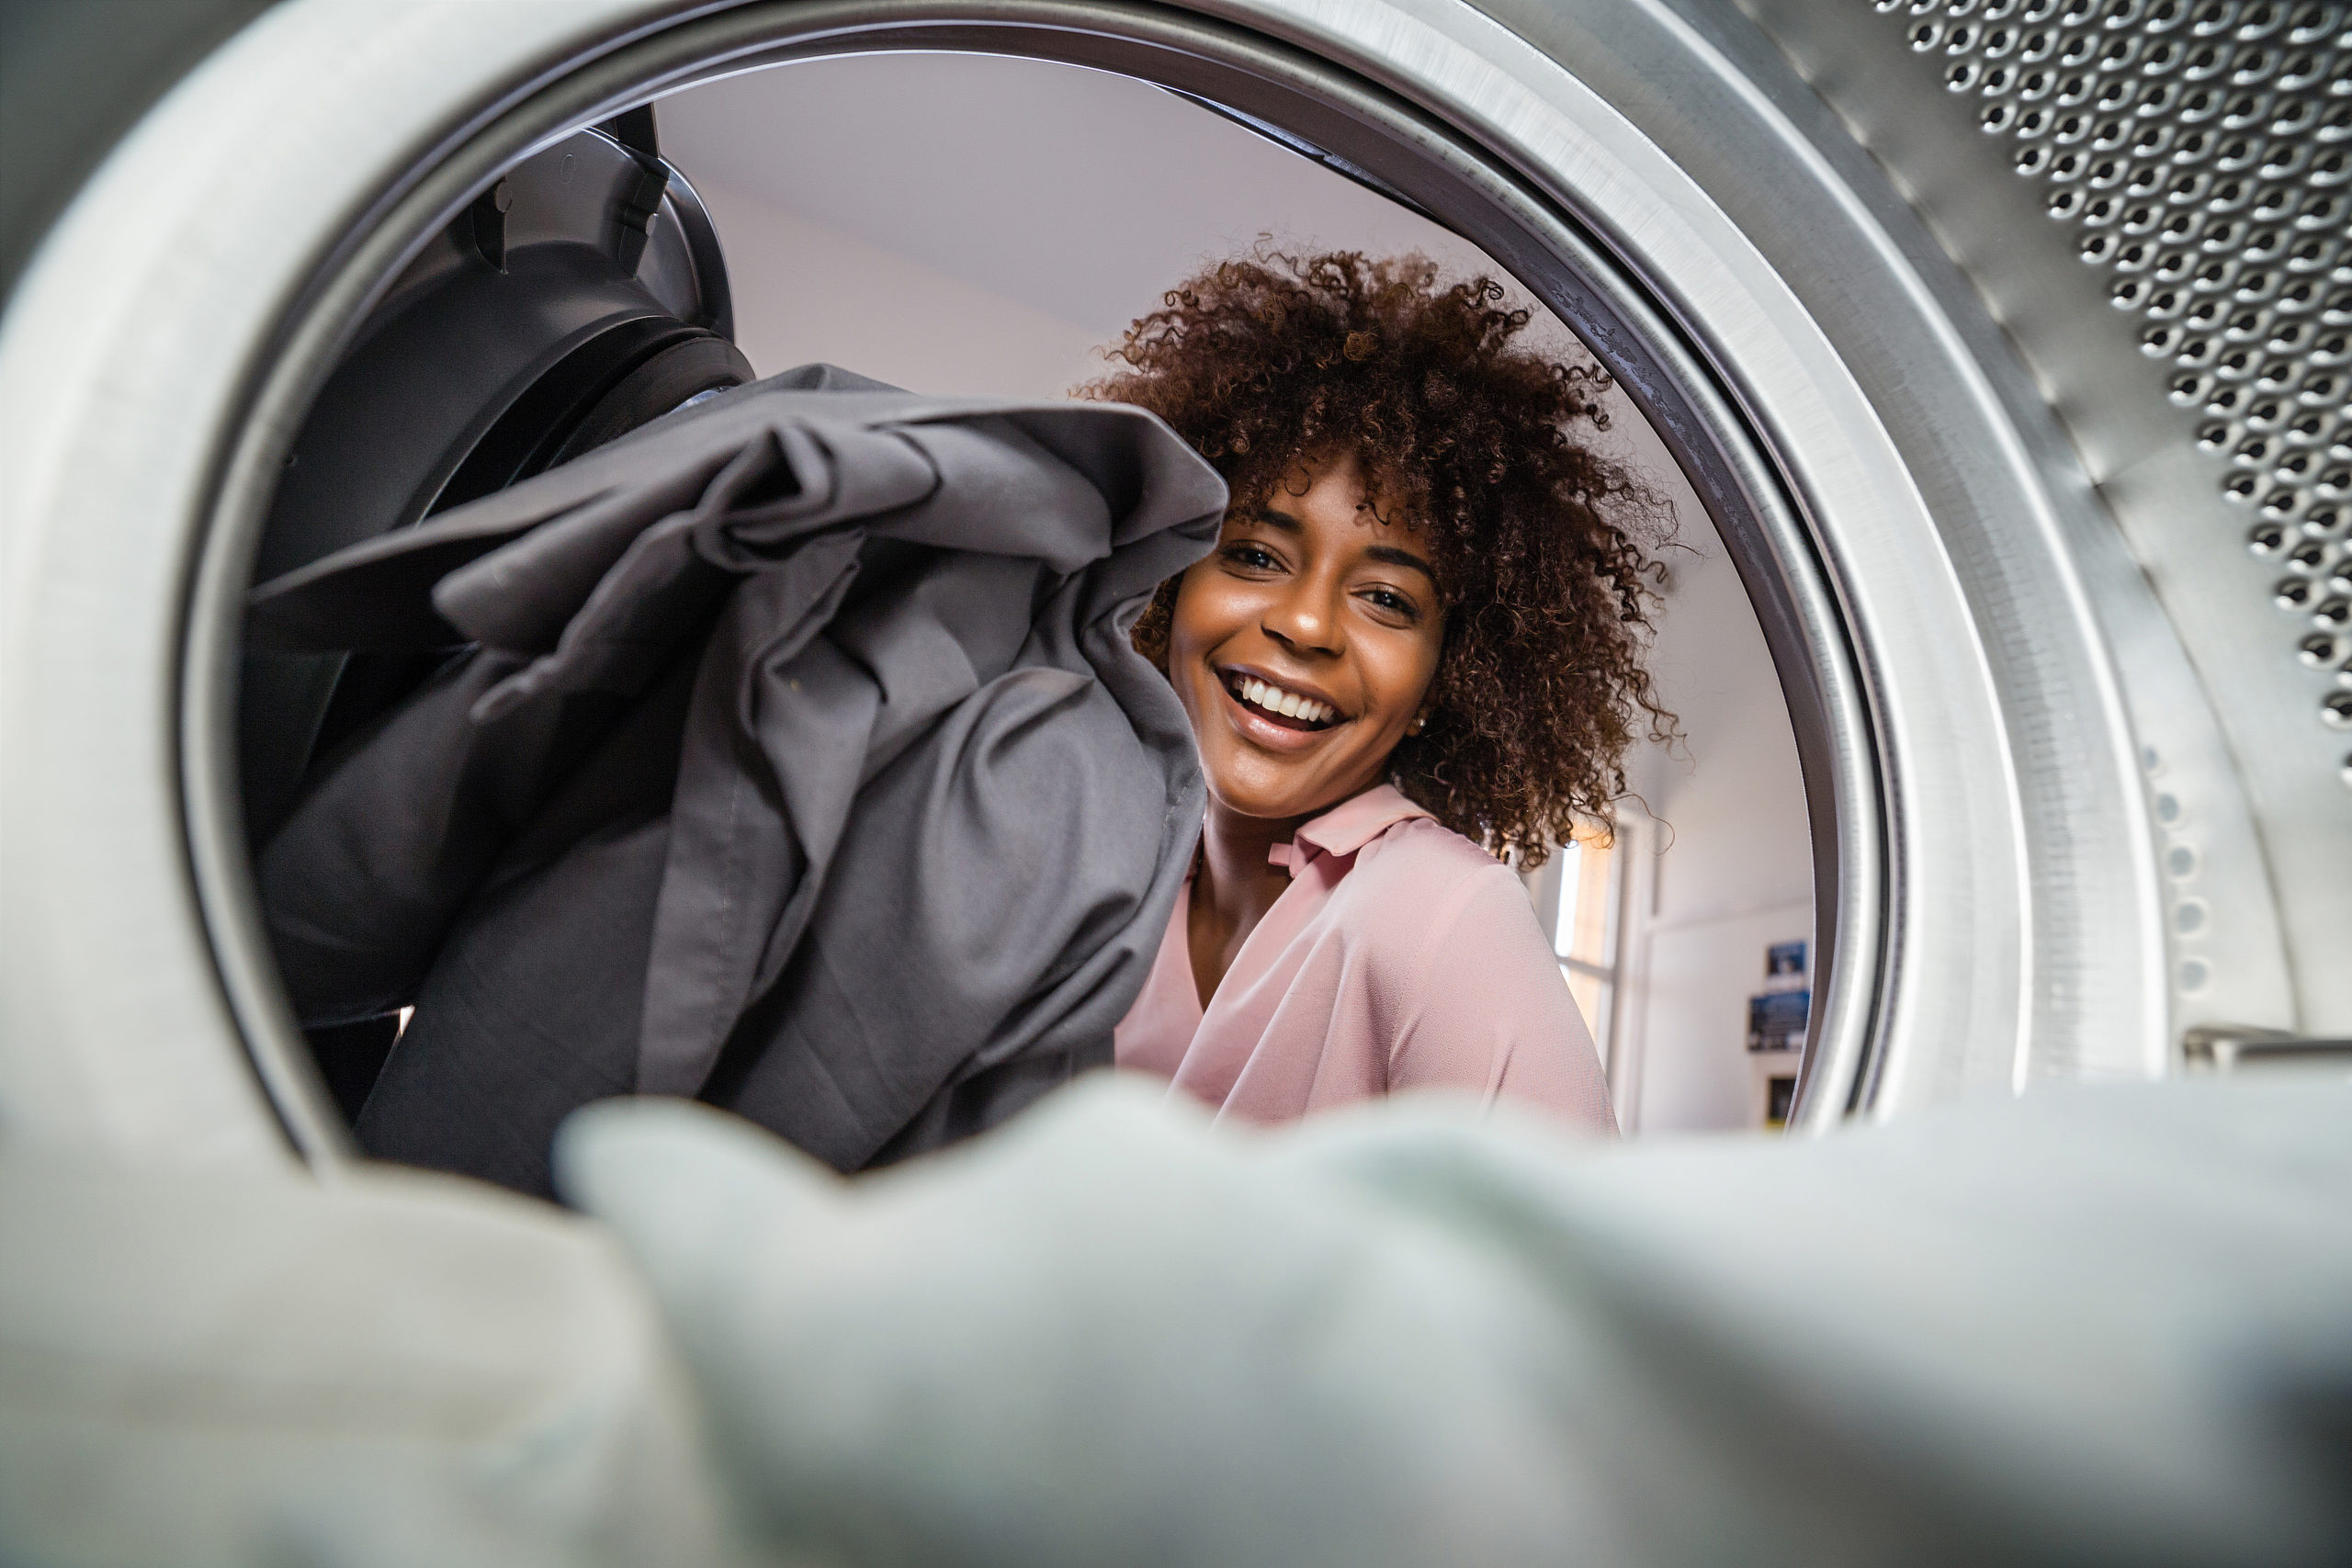 America S Most Reliable Appliance Brand Is A Surprise